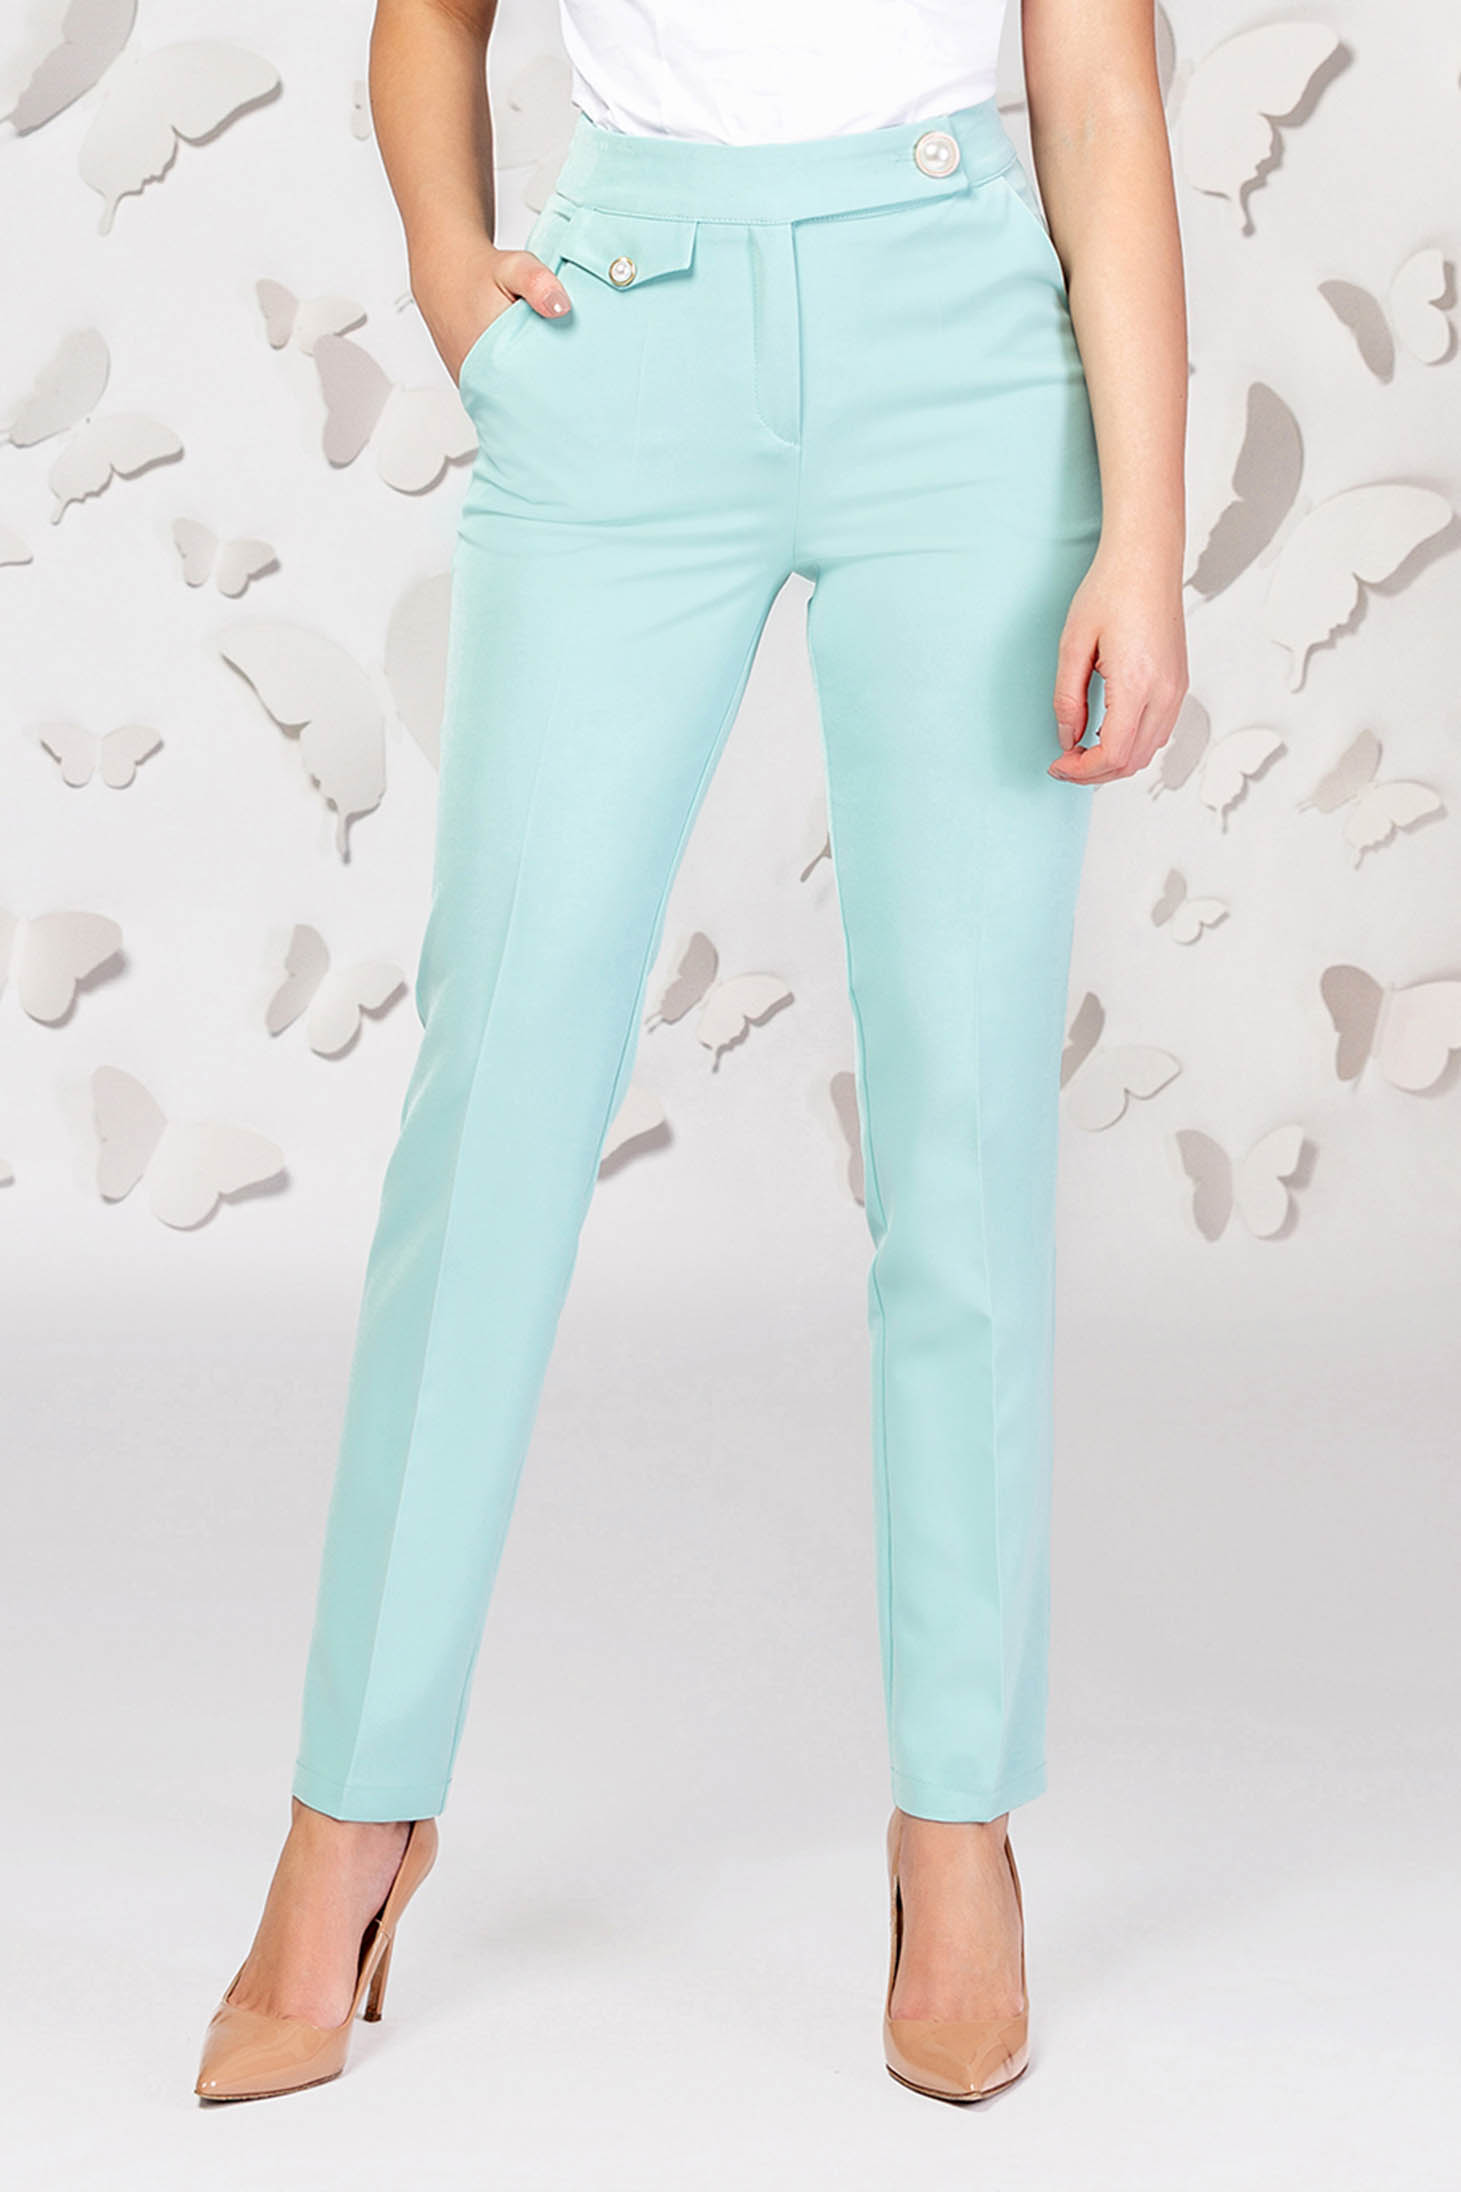 Turquoise conical trousers slightly elastic fabric